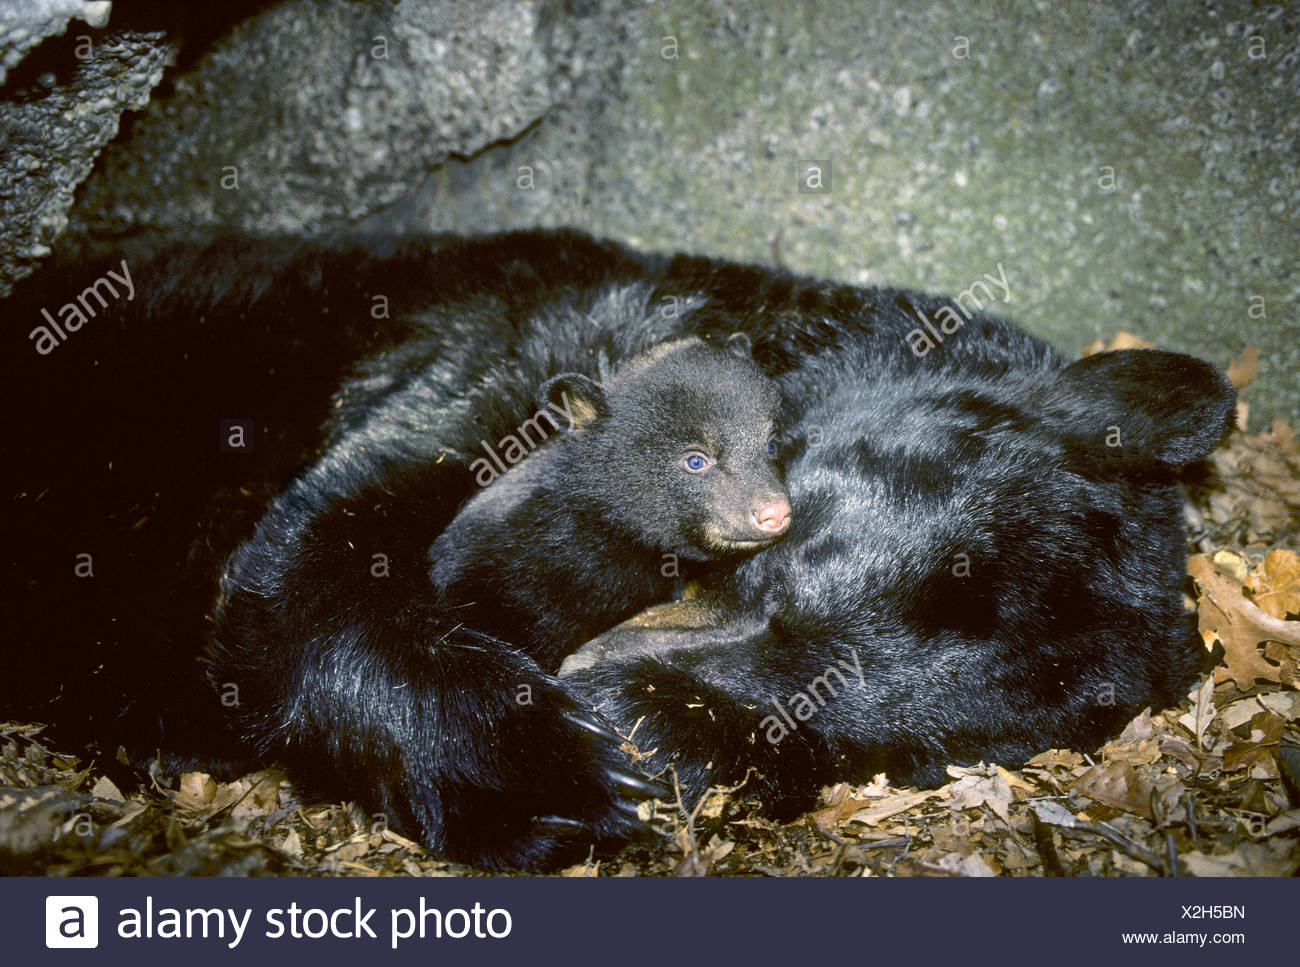 Hibernating mother black bear (Ursus americanus) with three-month old cub. Stock Photo